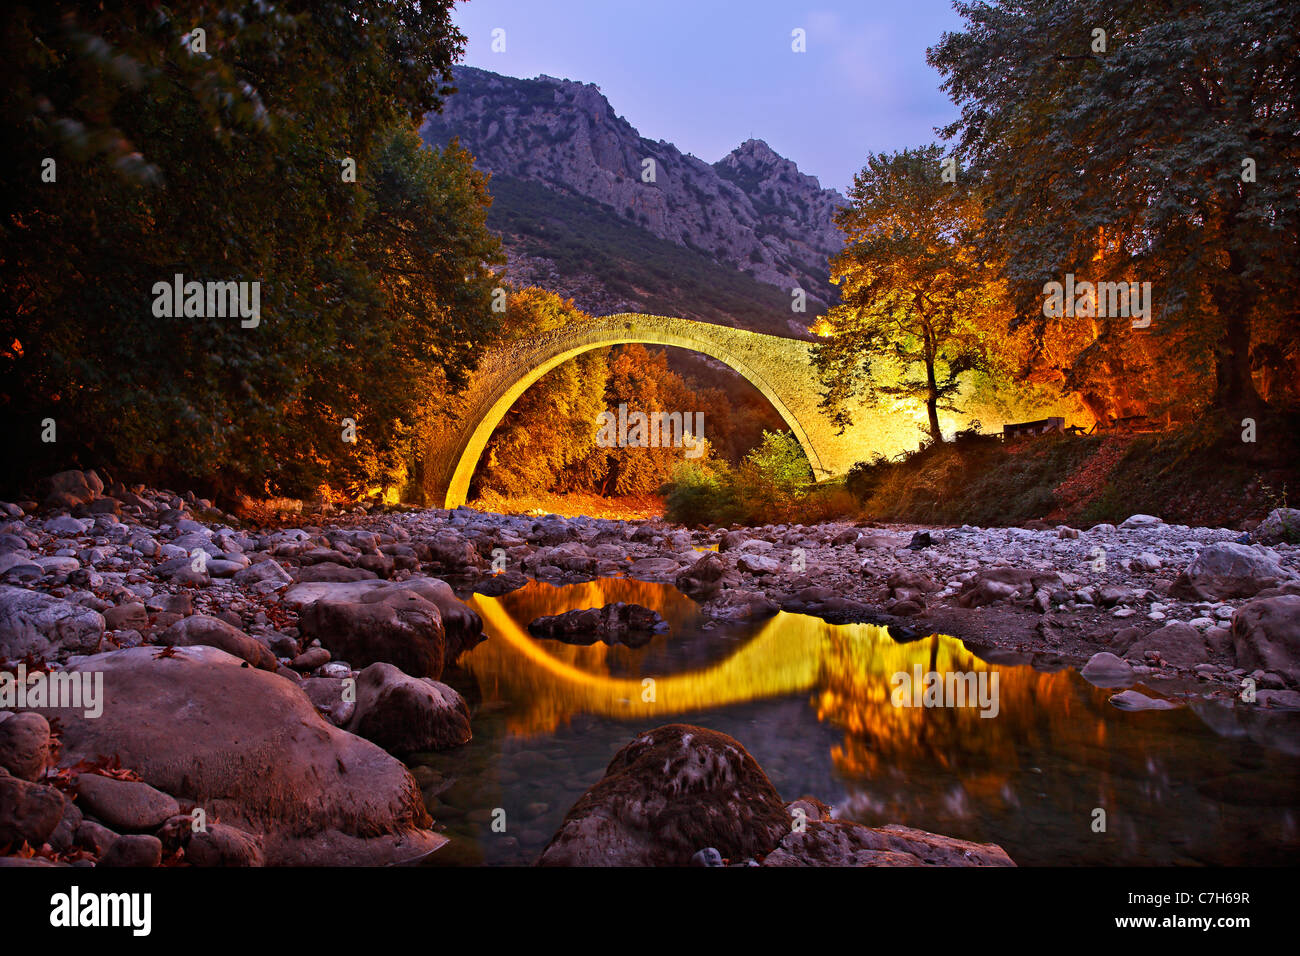 Pyli old stone arched bridge, also know as 'Porta Panagia' bridge, close to Pyli town, Trikala, Thessaly, - Stock Image